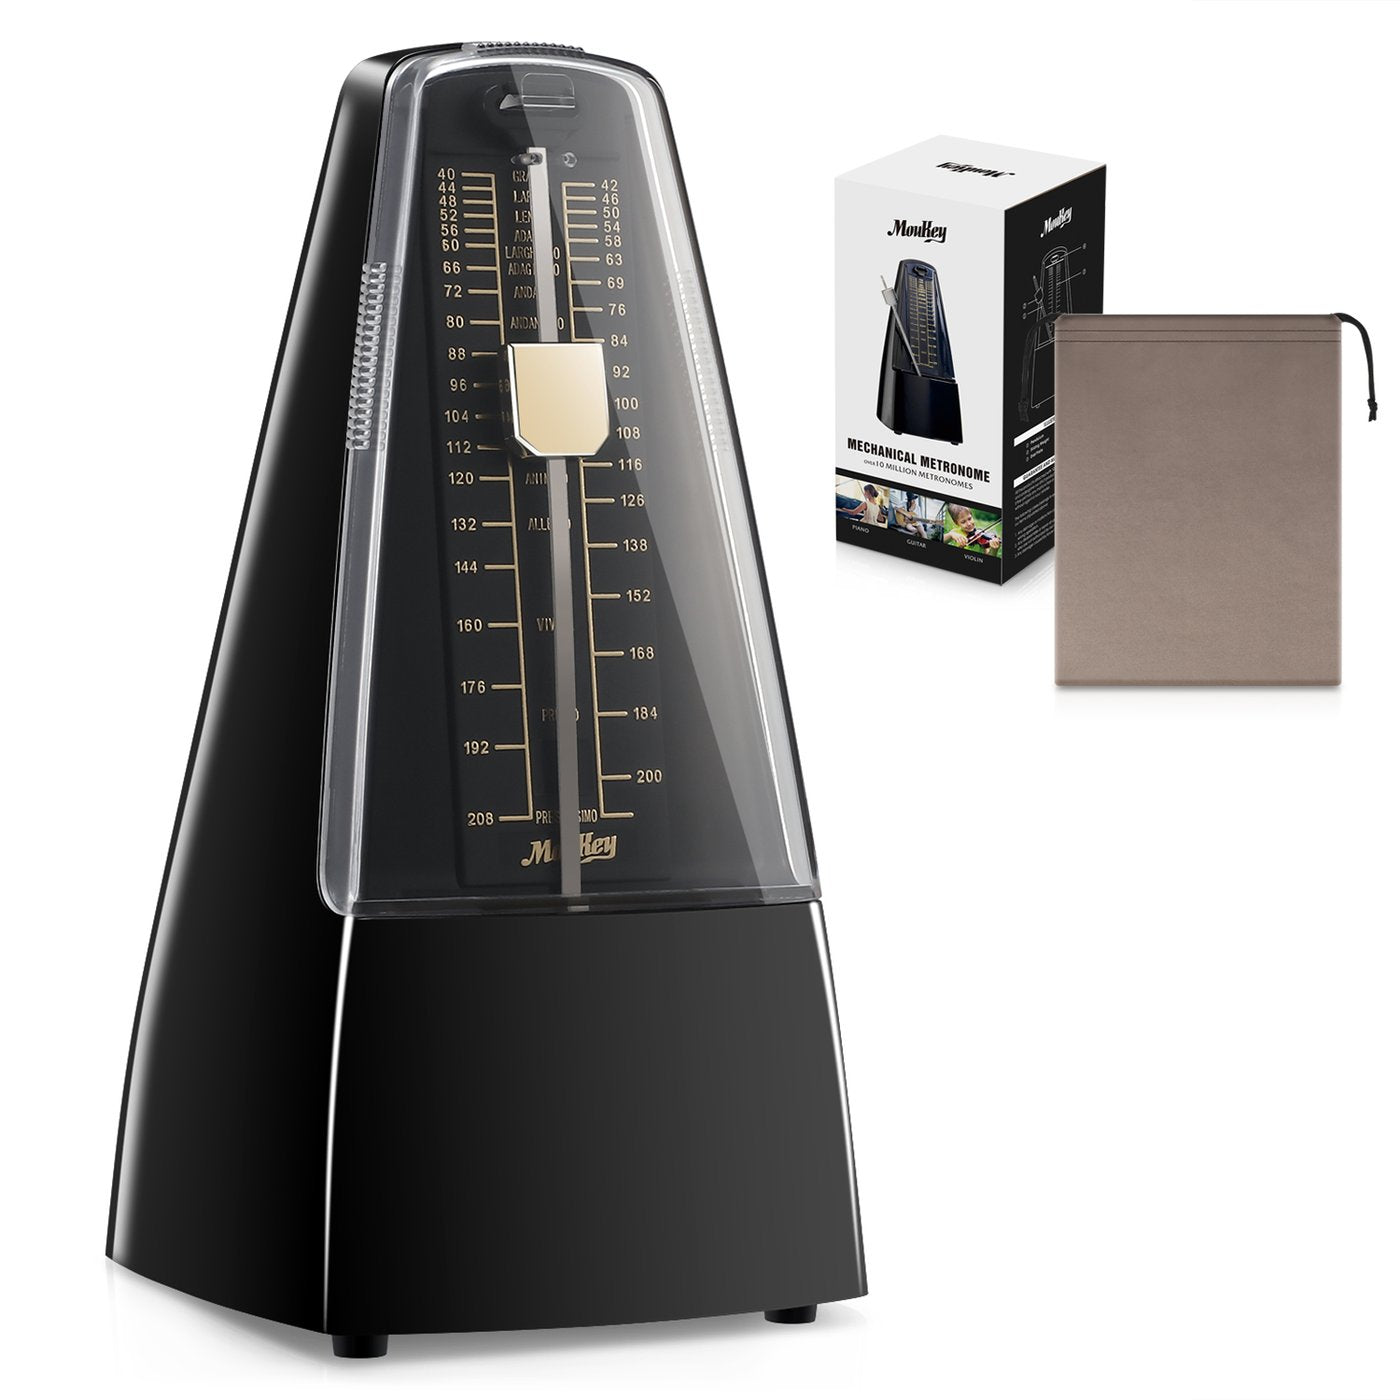 Moukey MPM-1 Mechanical Metronome Black/White/Red For Piano,Violin and Guitar